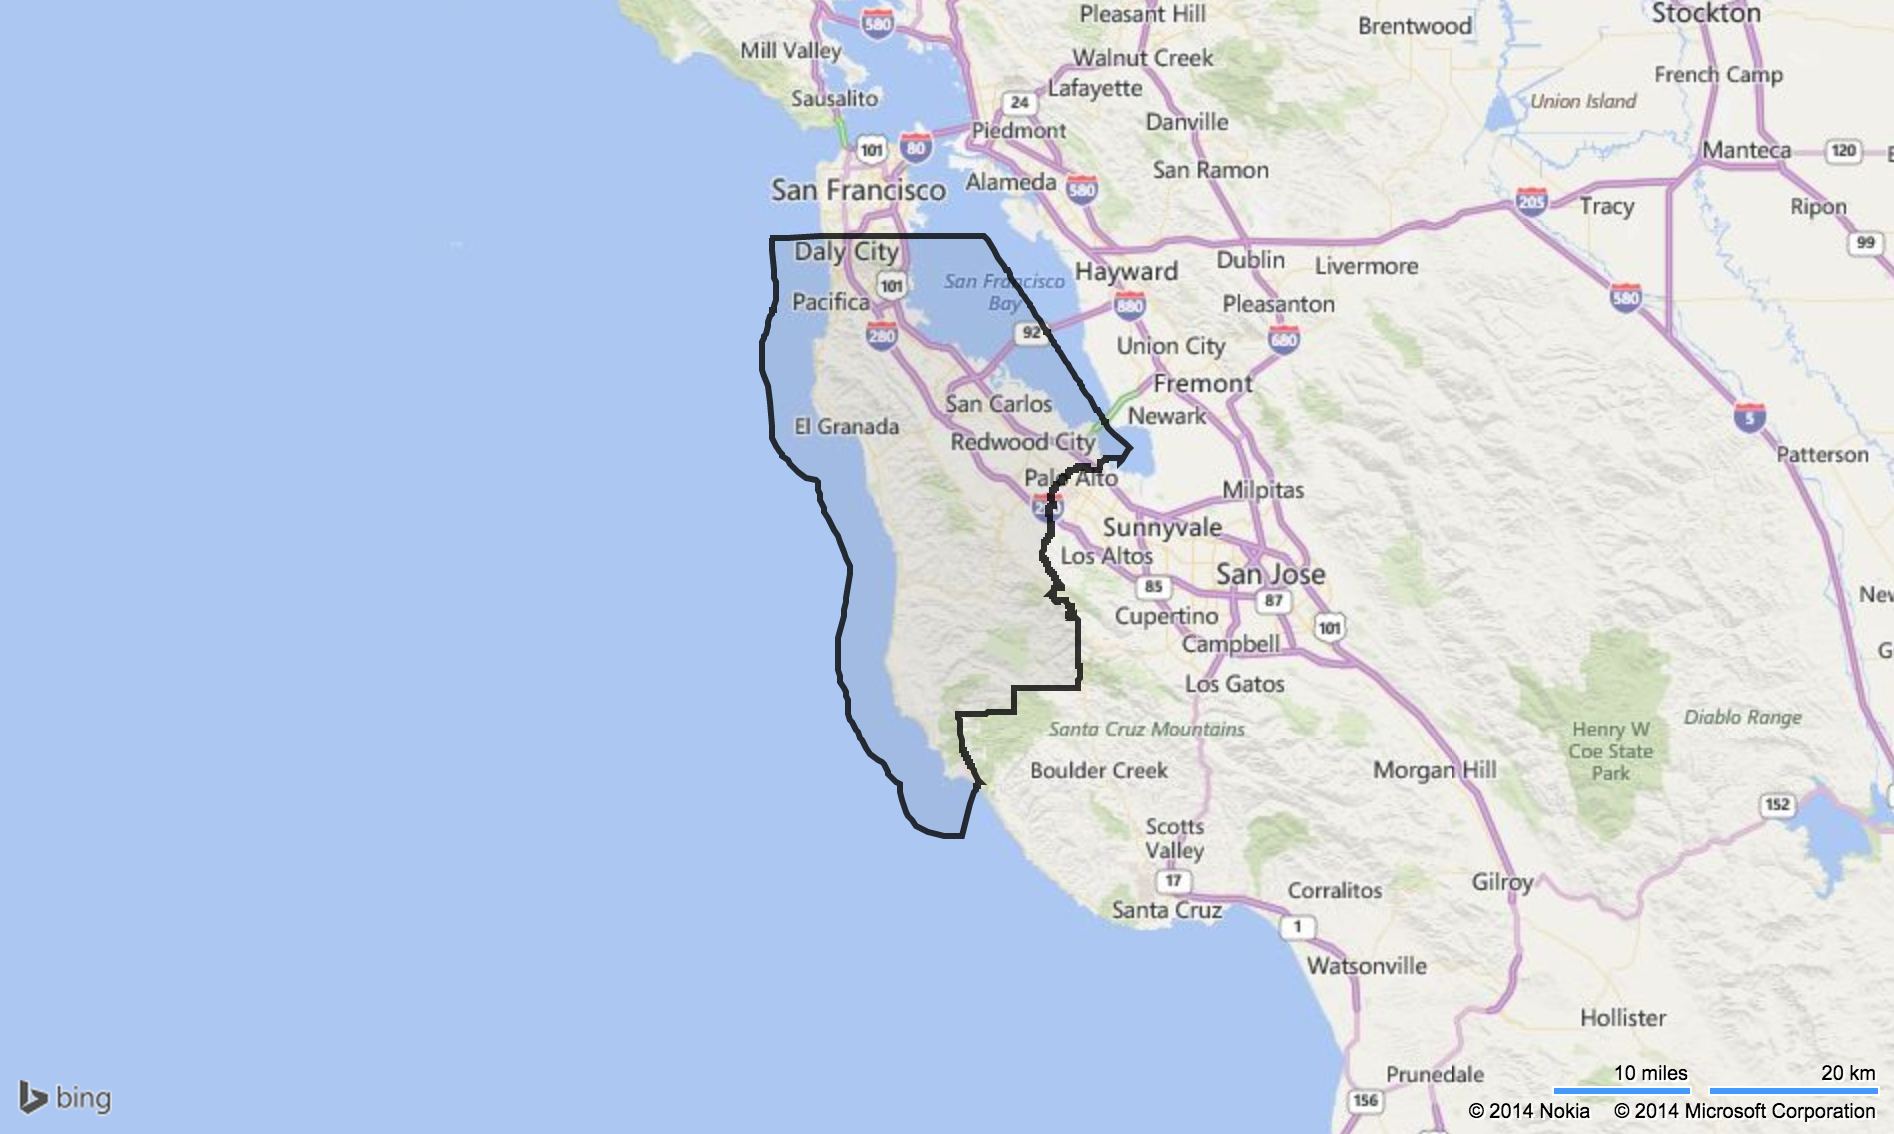 Where Is San Bruno California On The Map - Klipy - San Bruno California Map